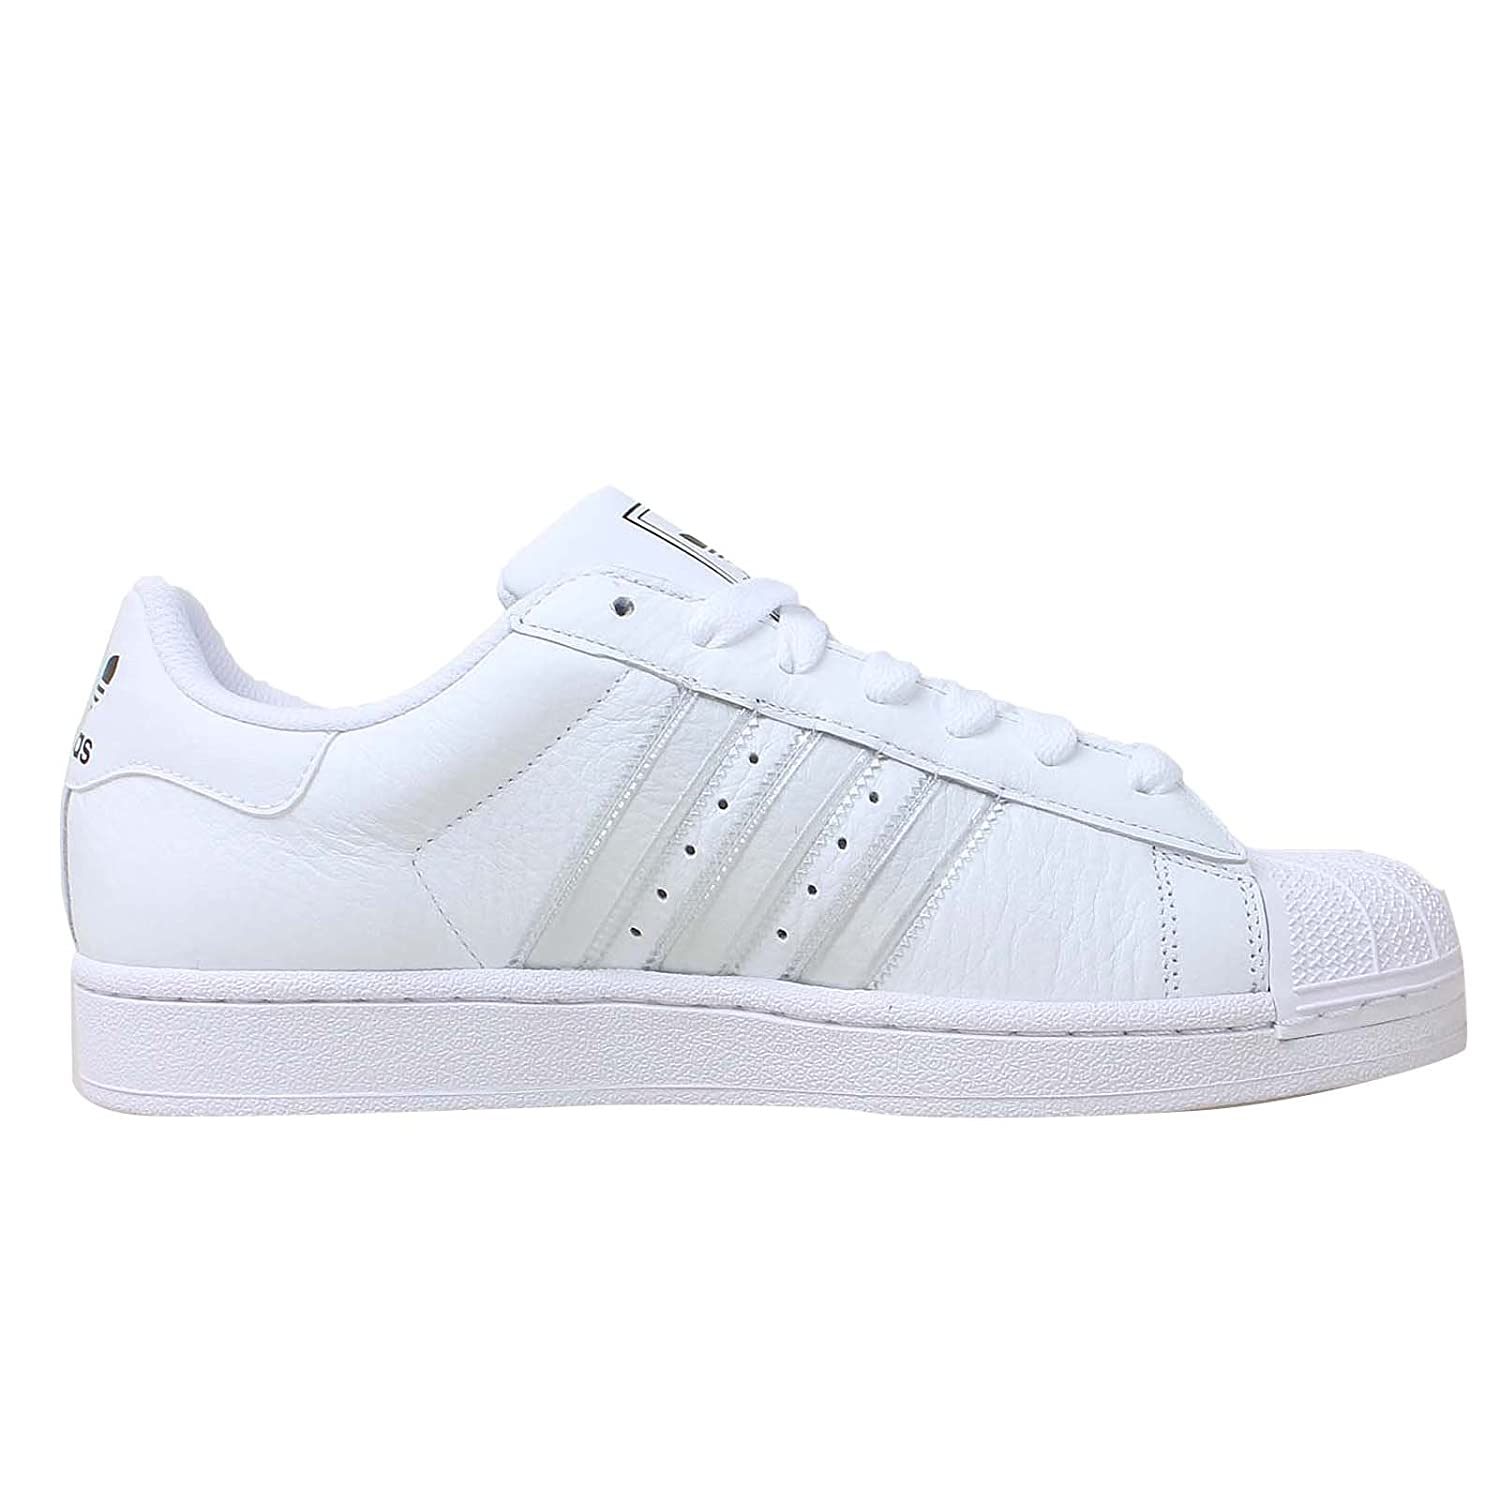 Adidas Superstar 2 IS Q20627, Baskets Mode Homme taille 46